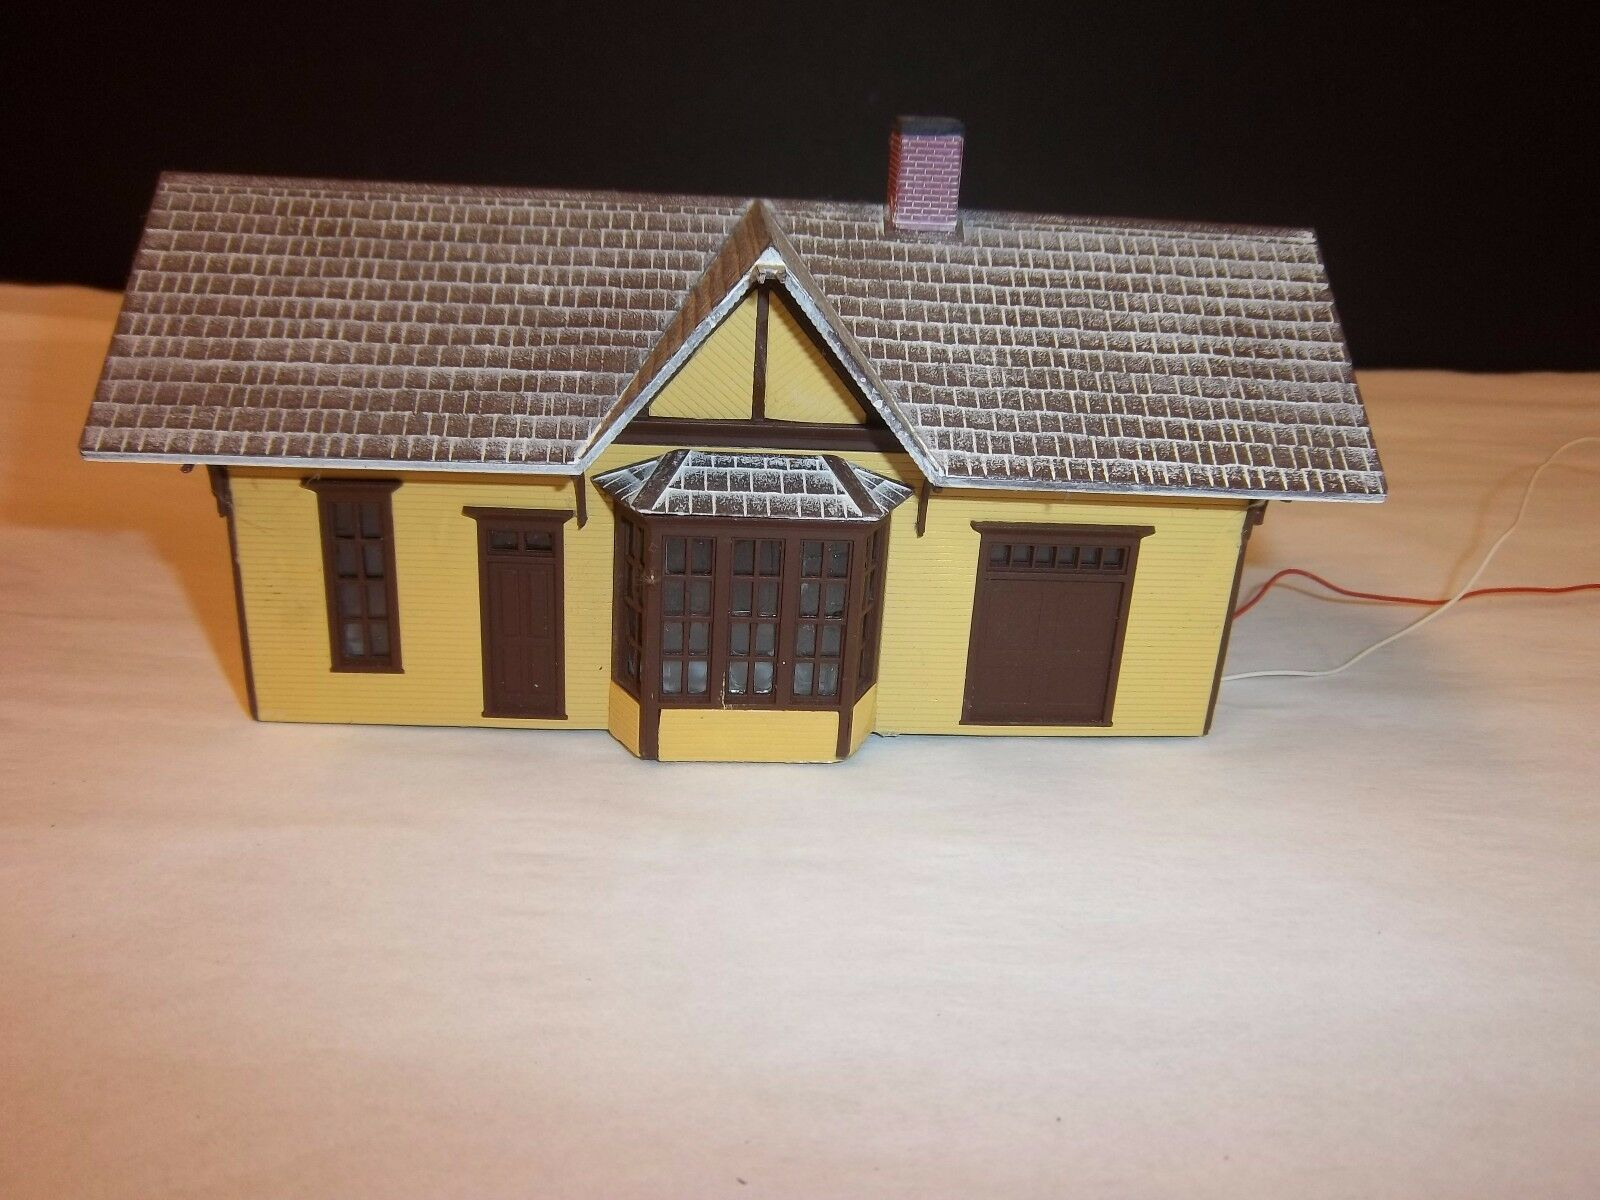 WALTHERS PASSENGER DEPOT, WALTHERS ALUMINATED HAND PAINTED HO SCALE